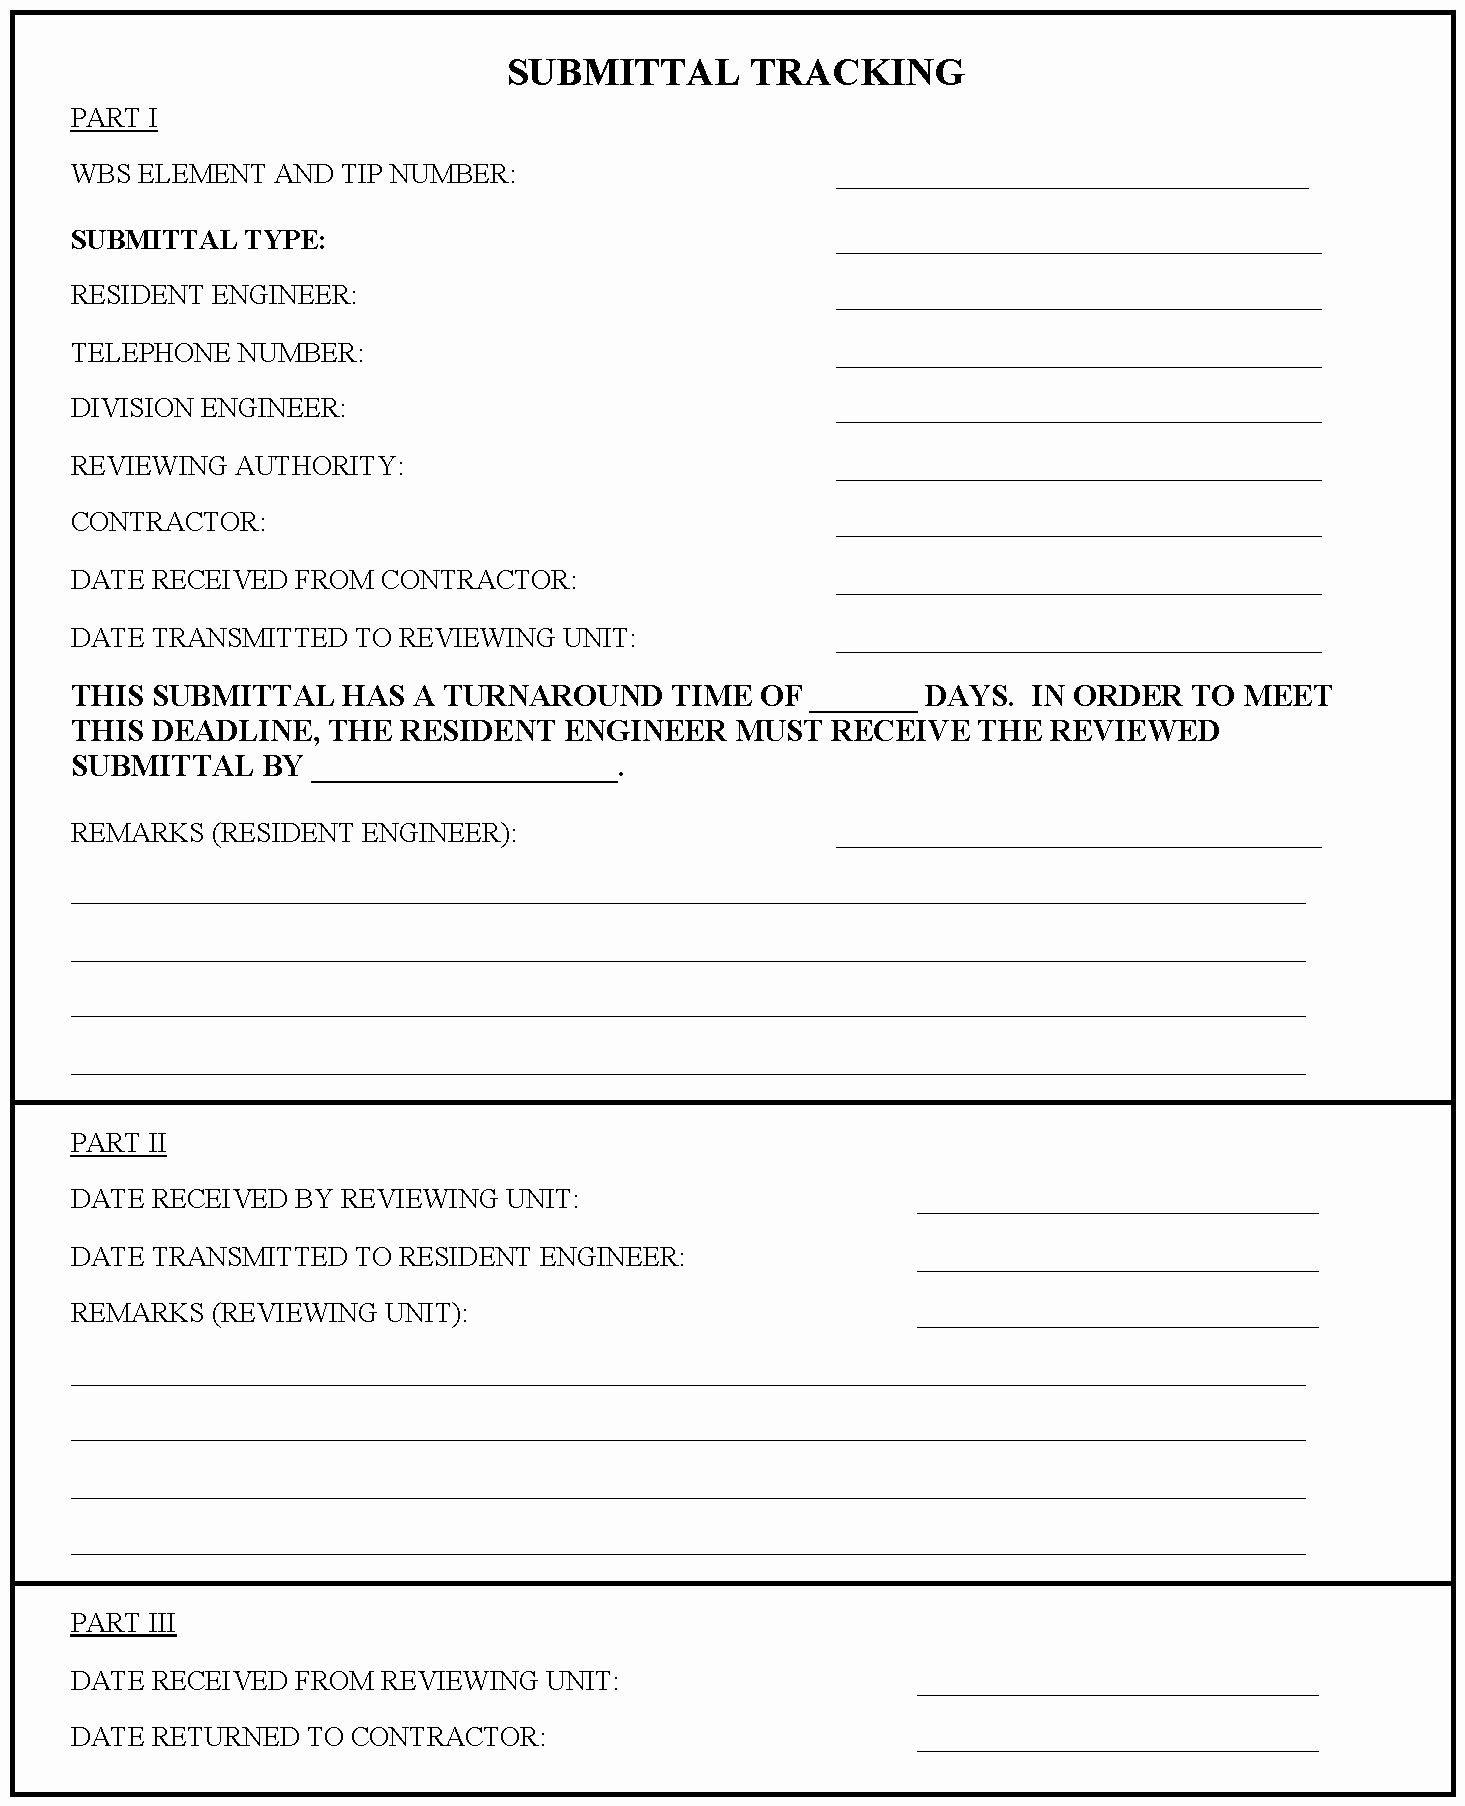 Material Transmittal Form Best Of 19 Of Bid Submittal Template In